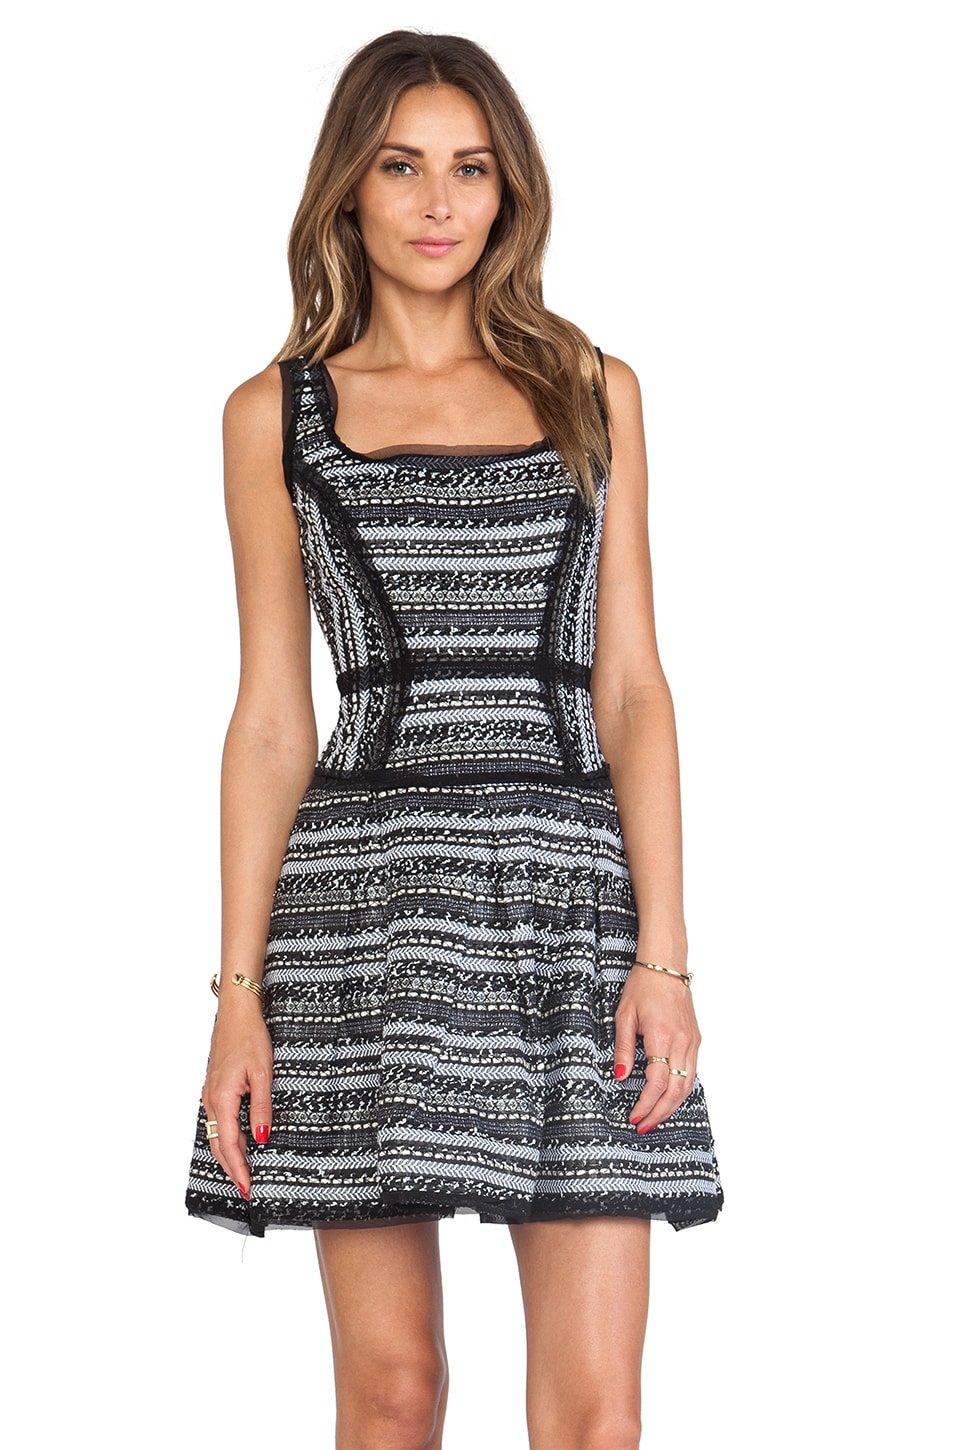 MILLY Malhia Couture Tweed Piper Party Dress in Black